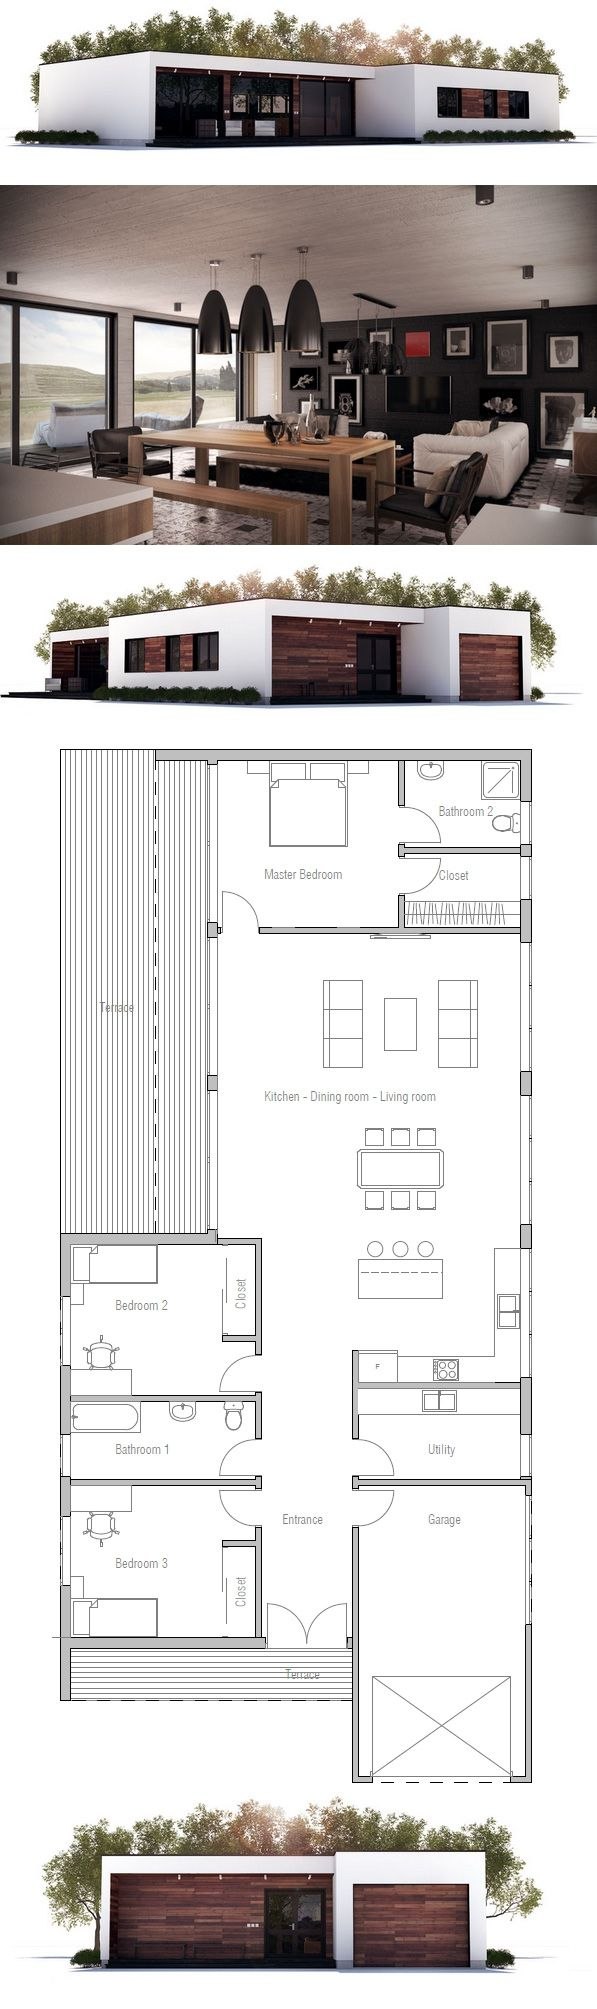 Interesting layout. Surprise bedroom at the back. Utility room in the front.Narrow House Plan, New Home, Minimalist House Design